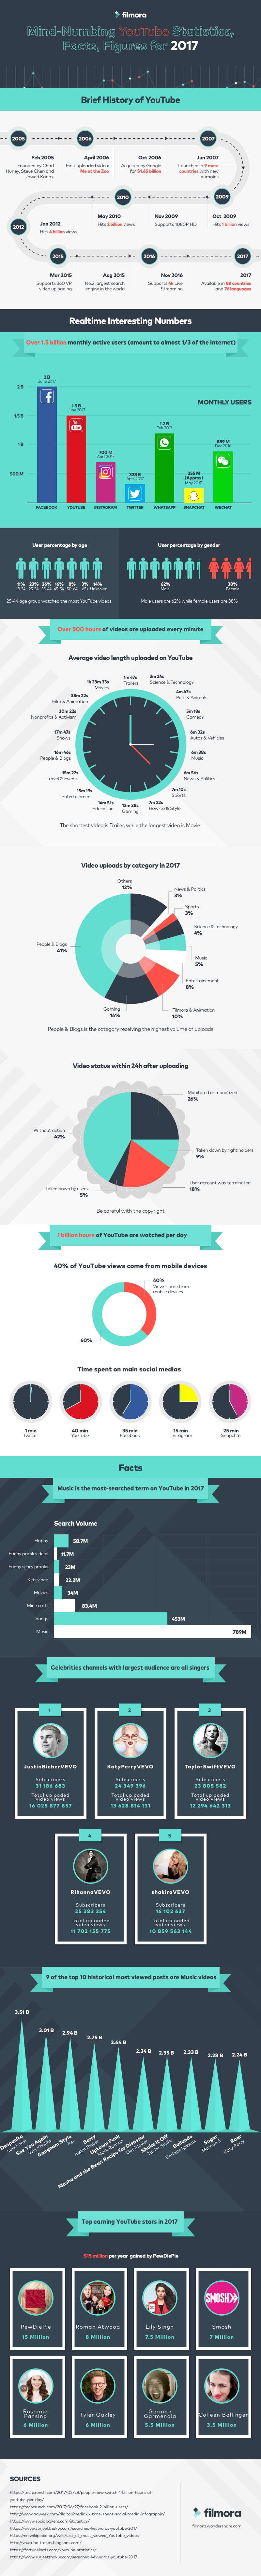 YouTube Facts Infographic, YouTube History